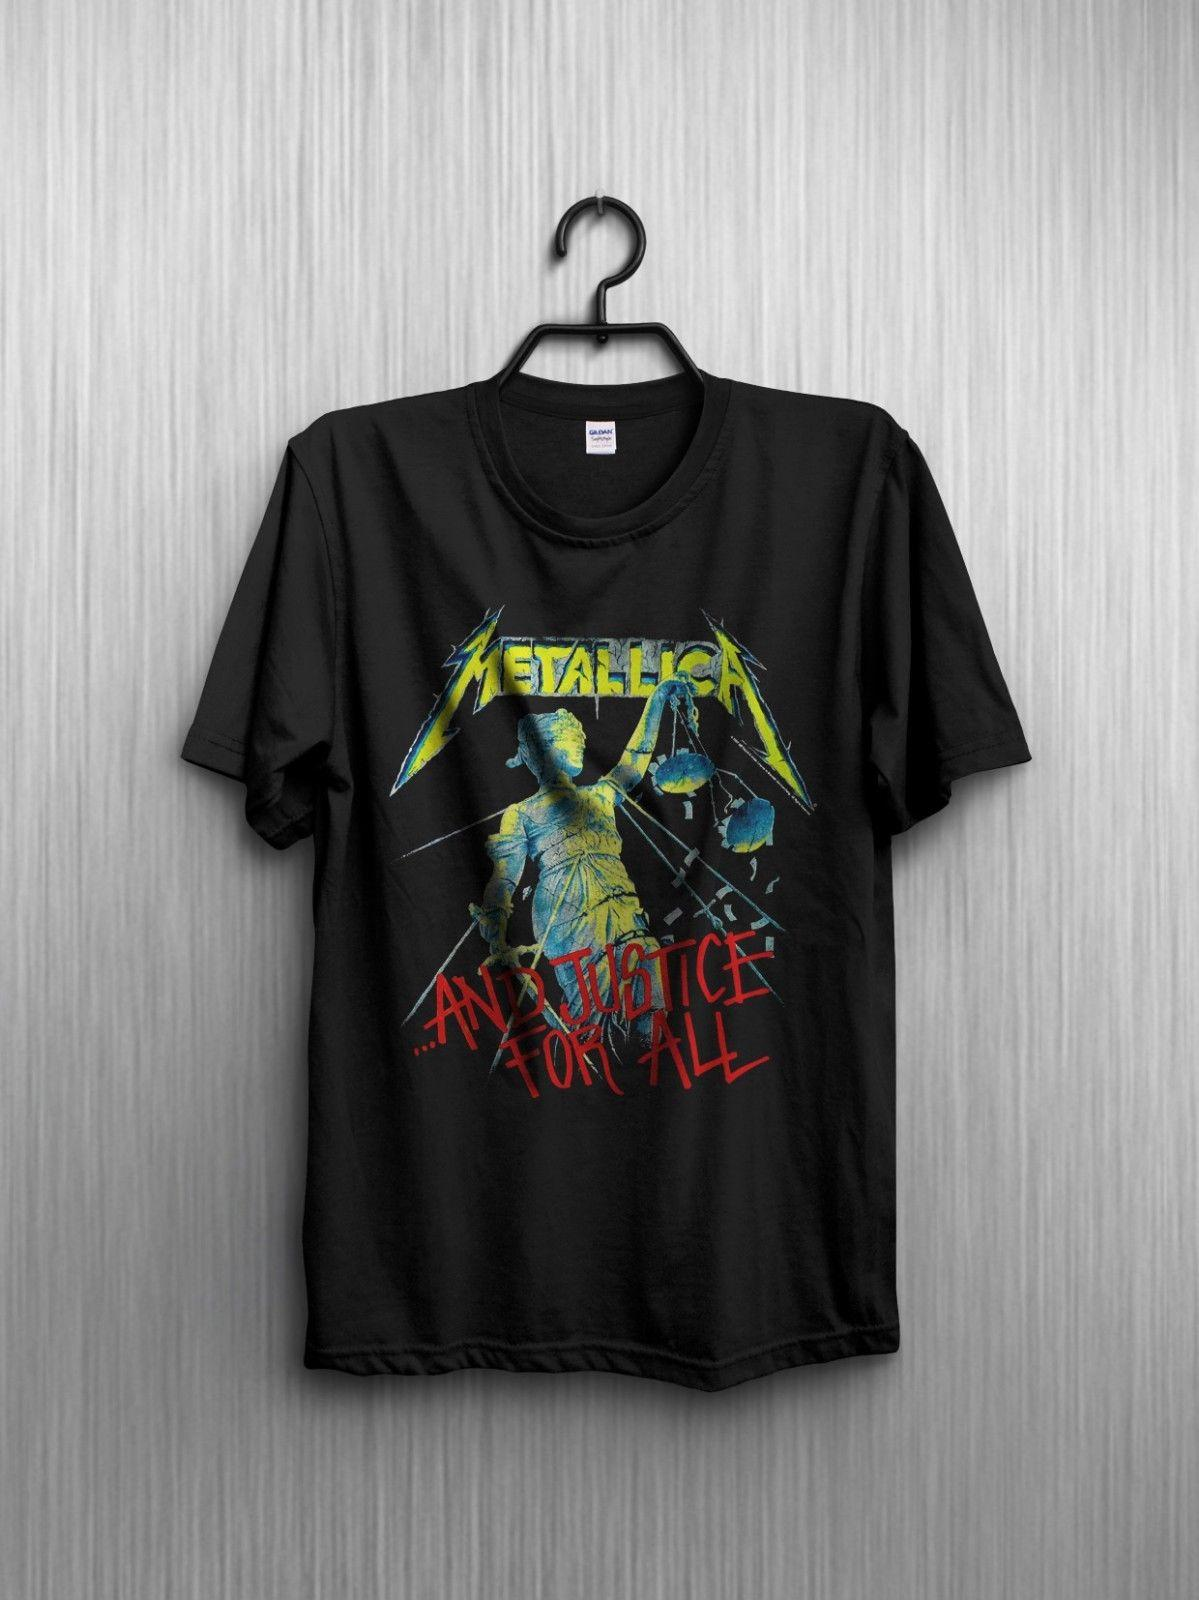 T Tour And 1988 Metallica Shirt For Vintage Reprint Justice All dwqB8dxI